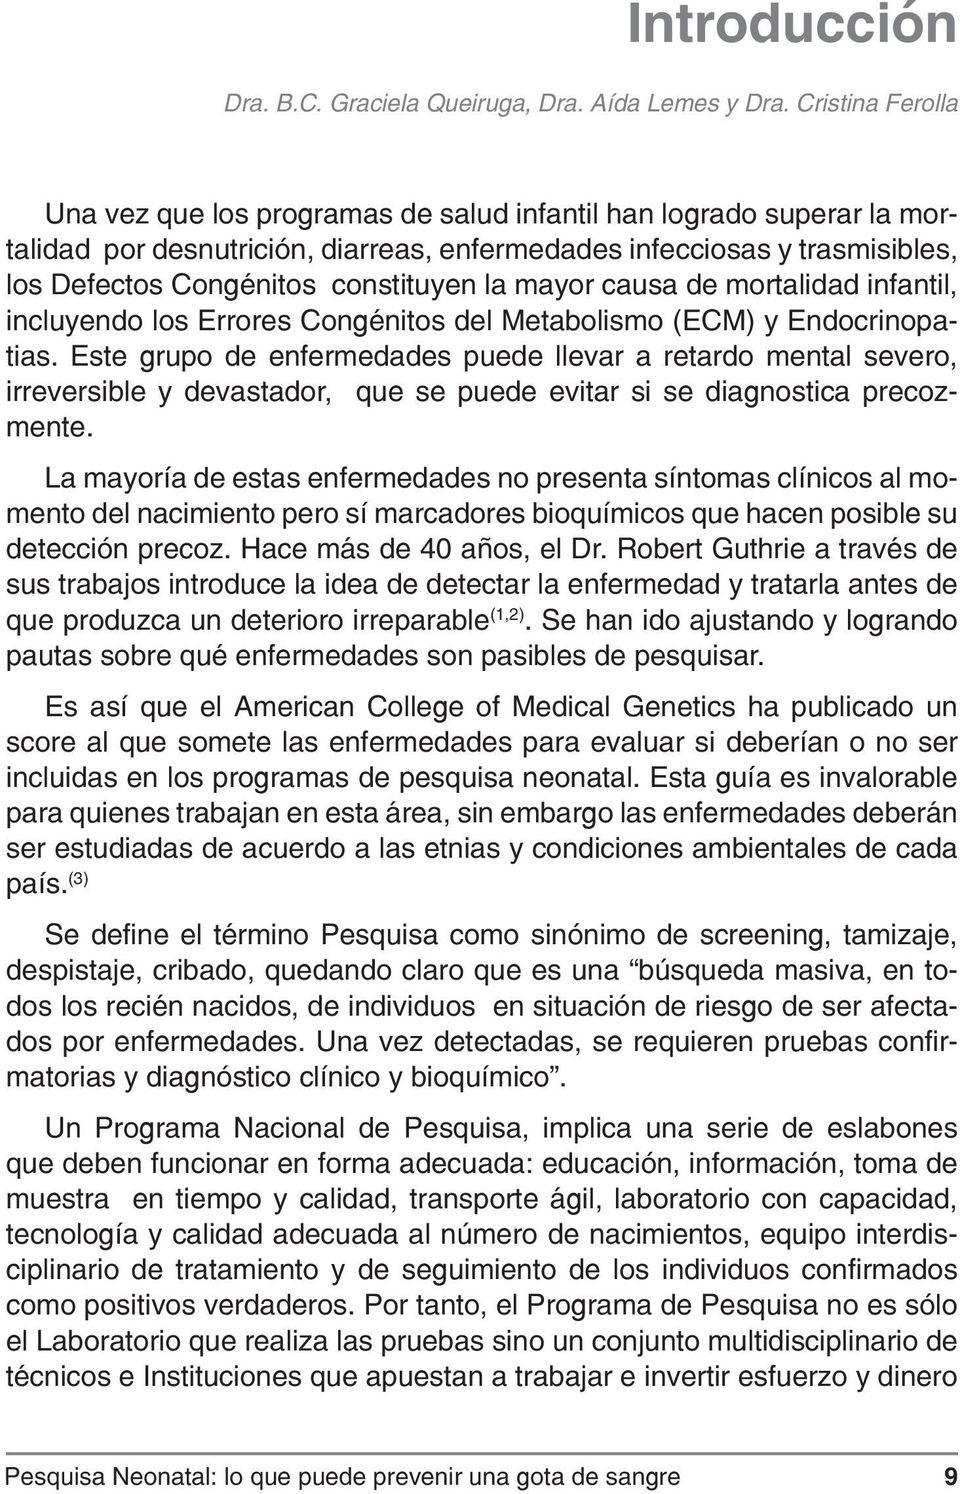 la mayor causa de mortalidad infantil, incluyendo los Errores Congénitos del Metabolismo (ECM) y Endocrinopatias.